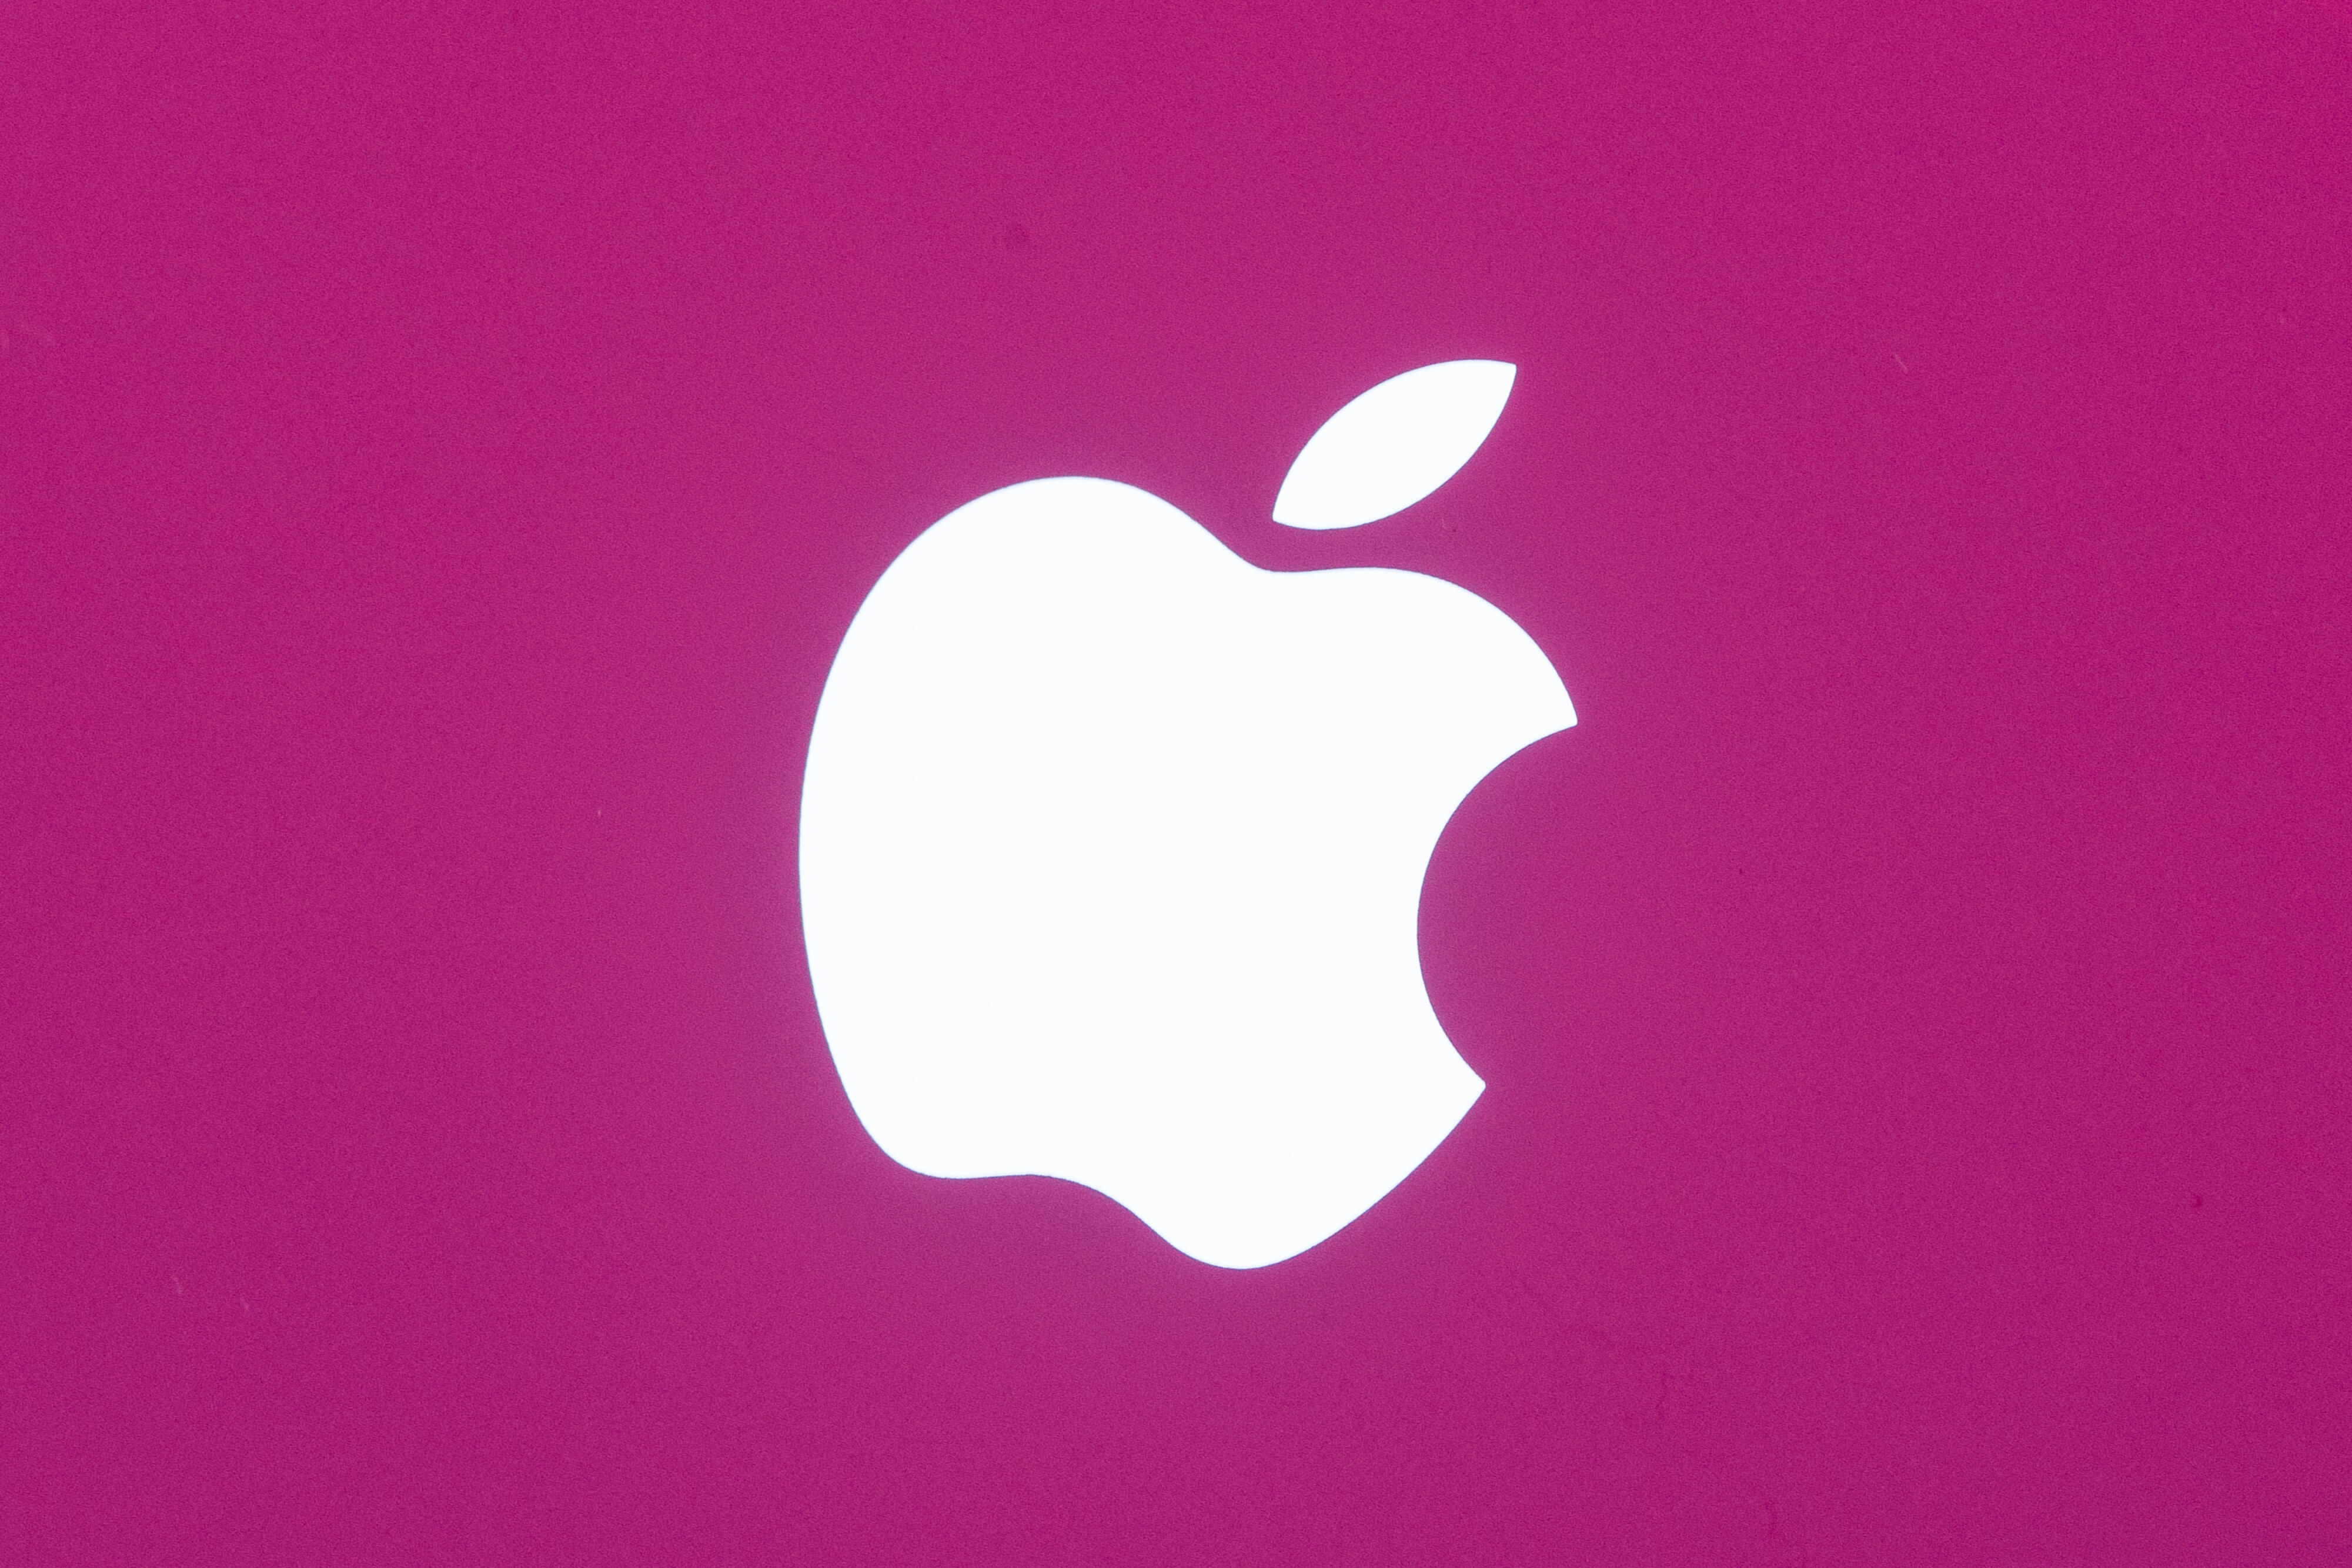 apple-iphone-logo-3786